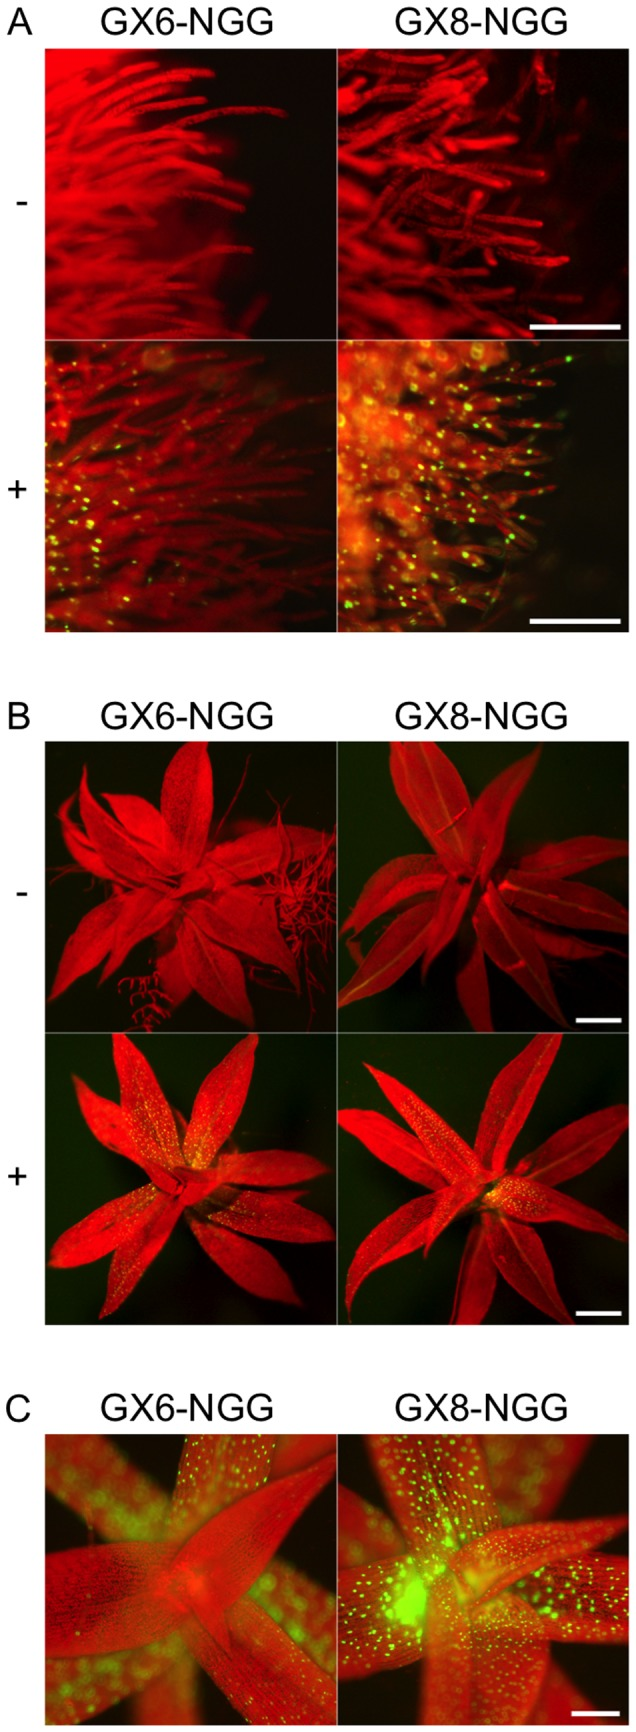 medium resolution of fluorescence images of protonemata a and gametophores b of gx6 ngg